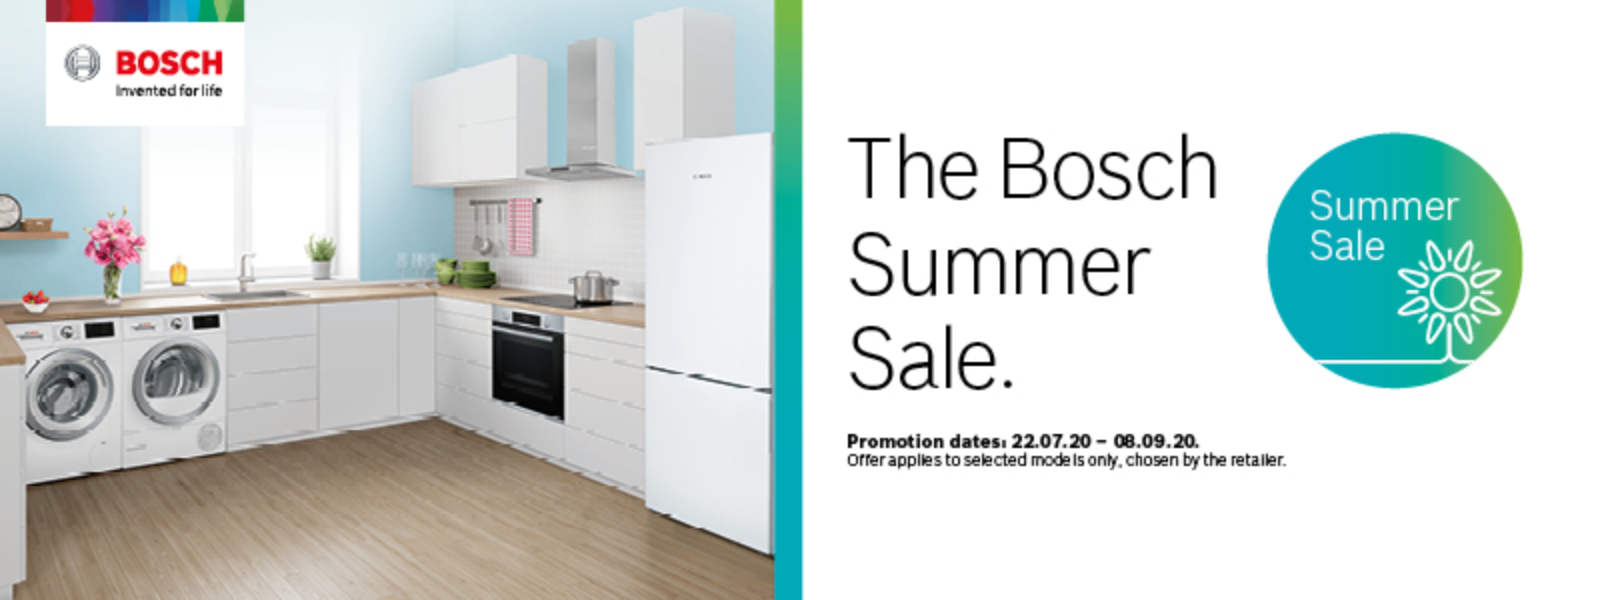 BOSCH Dine in or Out offer